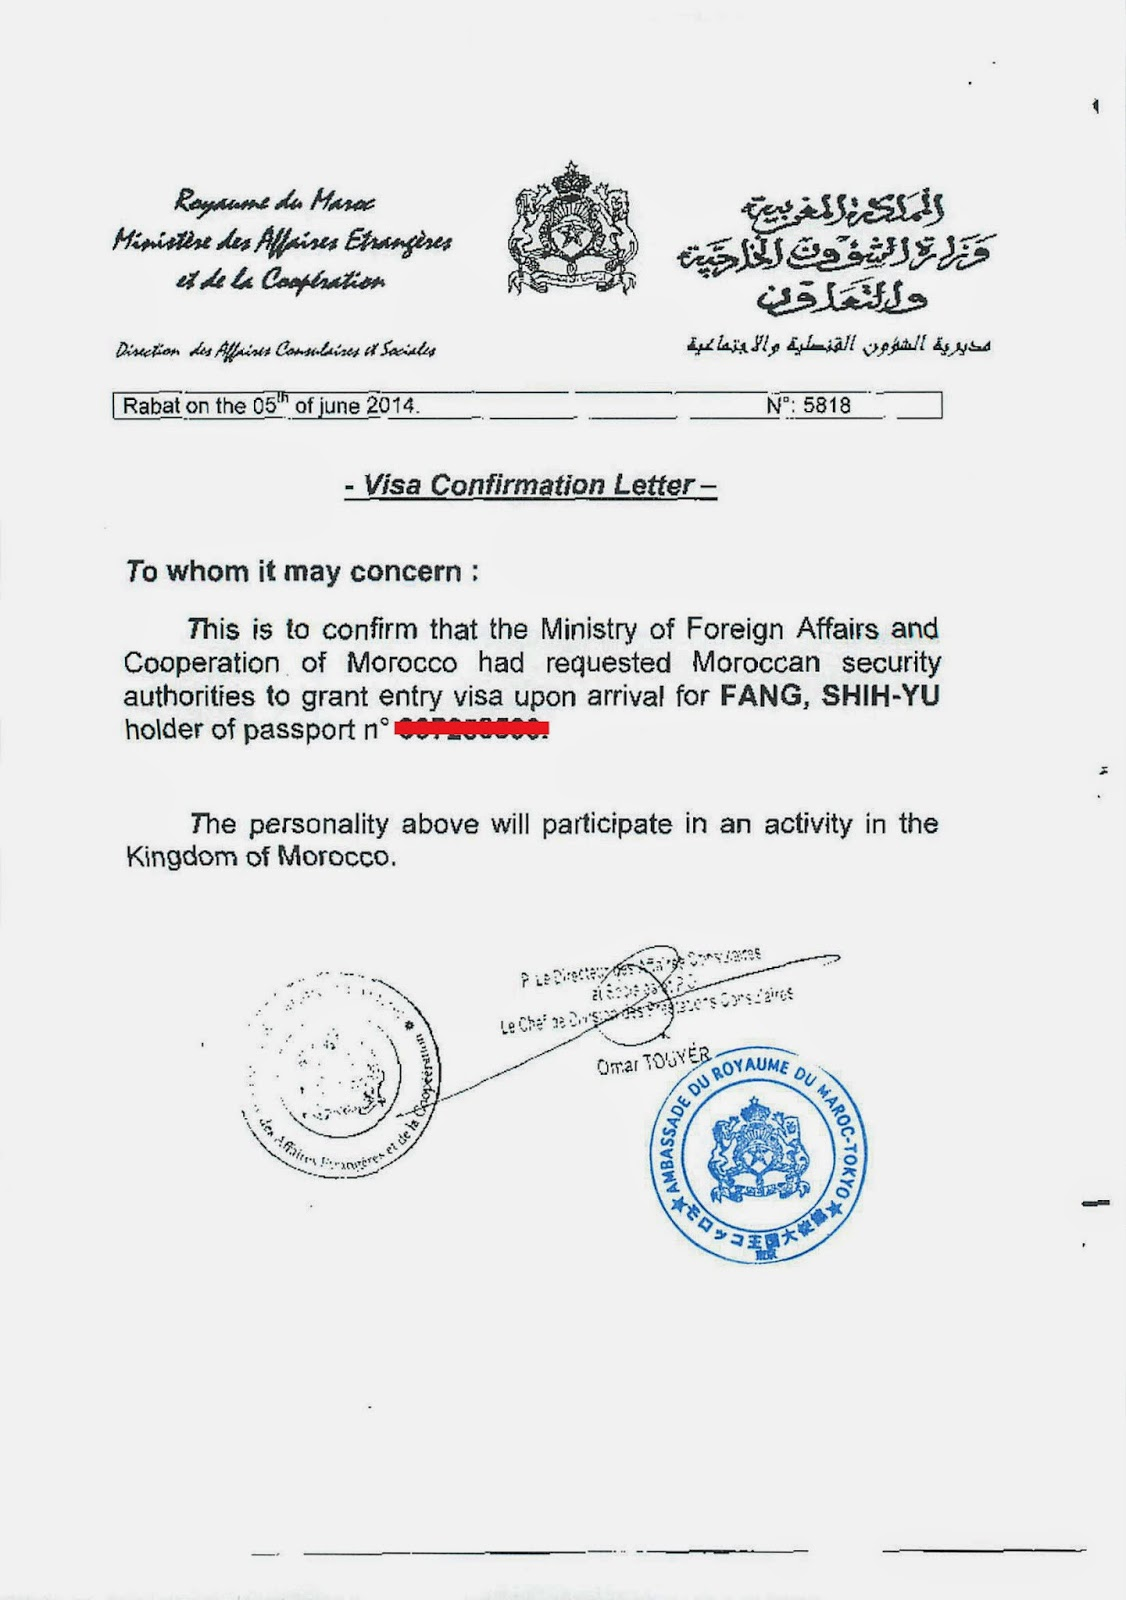 FANG+SHIH-YU Visa Application Form For Morocco on morocco education, morocco marriage, morocco business, morocco food, morocco festivals, morocco housing, morocco cars, morocco transportation, morocco maps, morocco shopping, morocco tourism, morocco travel, morocco tours, morocco photography, morocco hotel,